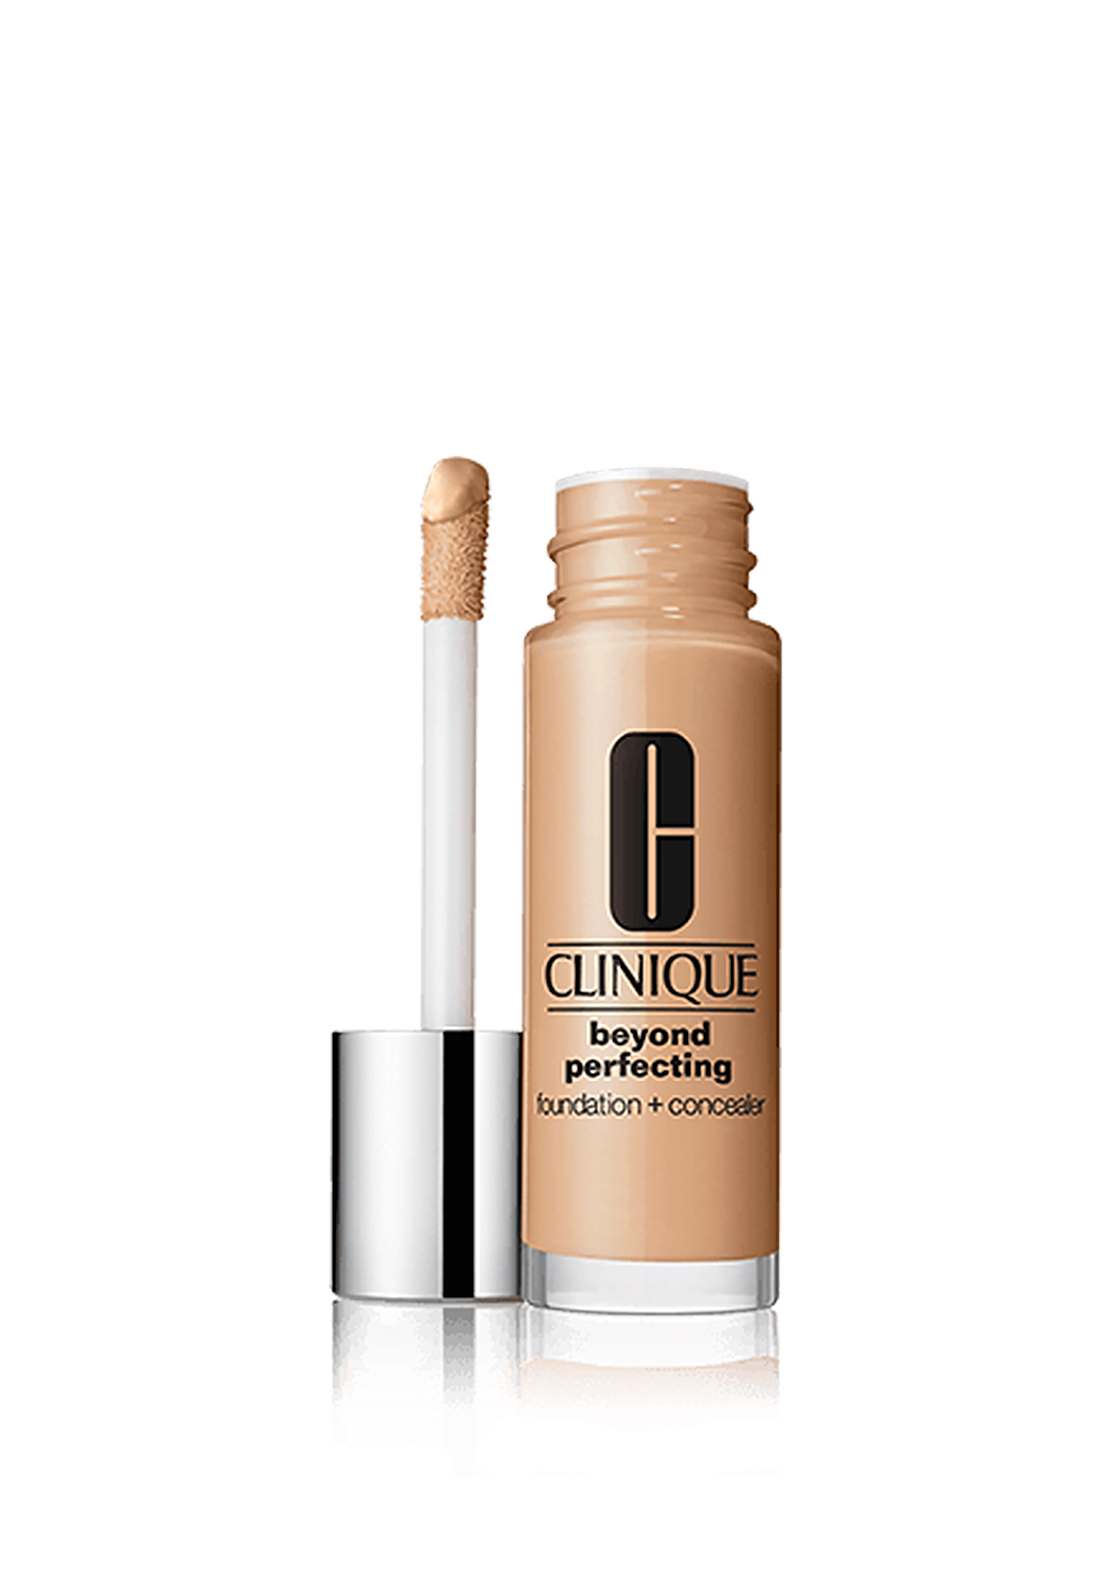 Clinique Beyond Perfecting ™ Foundation and Concealer, Chamois